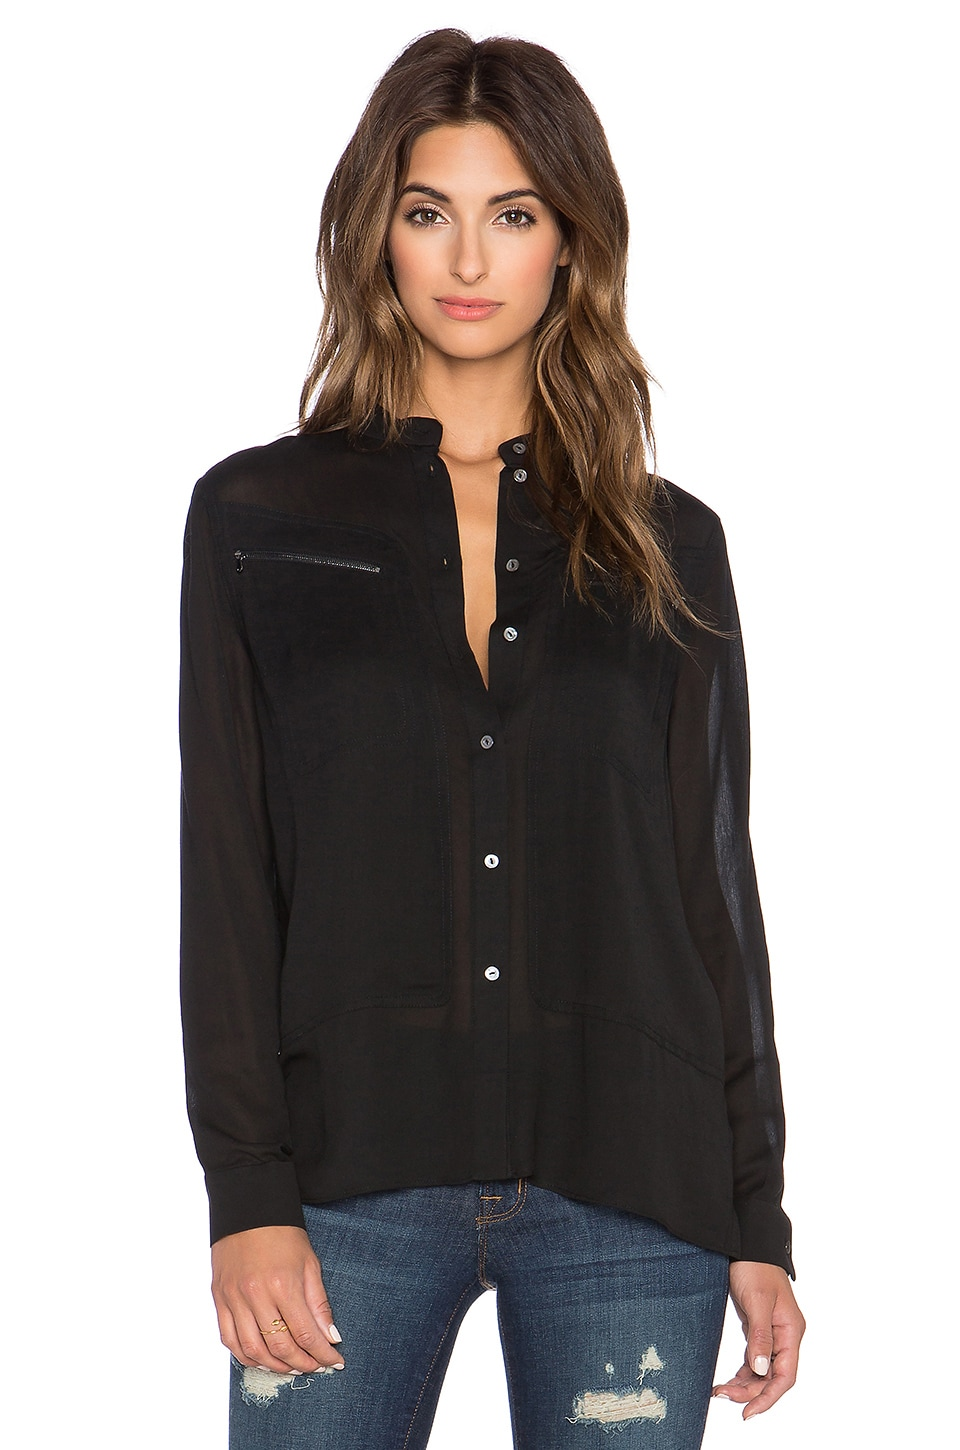 J Brand Irina Button Up Shirt in Black